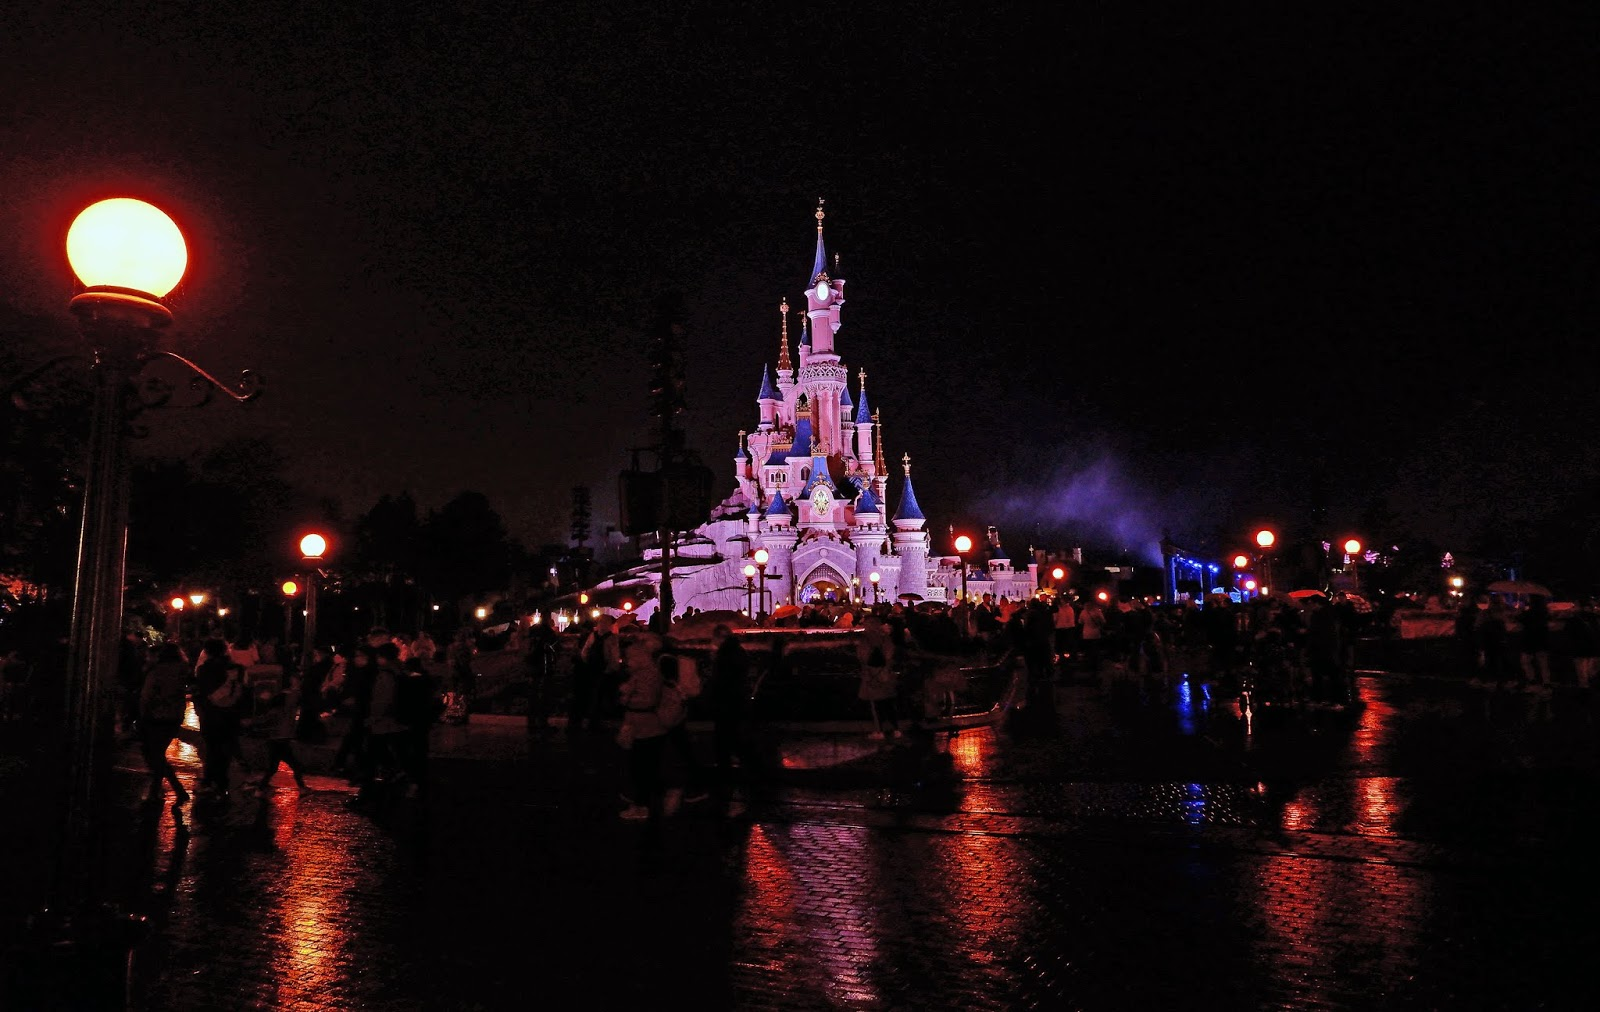 Sleeping Beauty Castle at night during Halloween season, Disneyland Paris